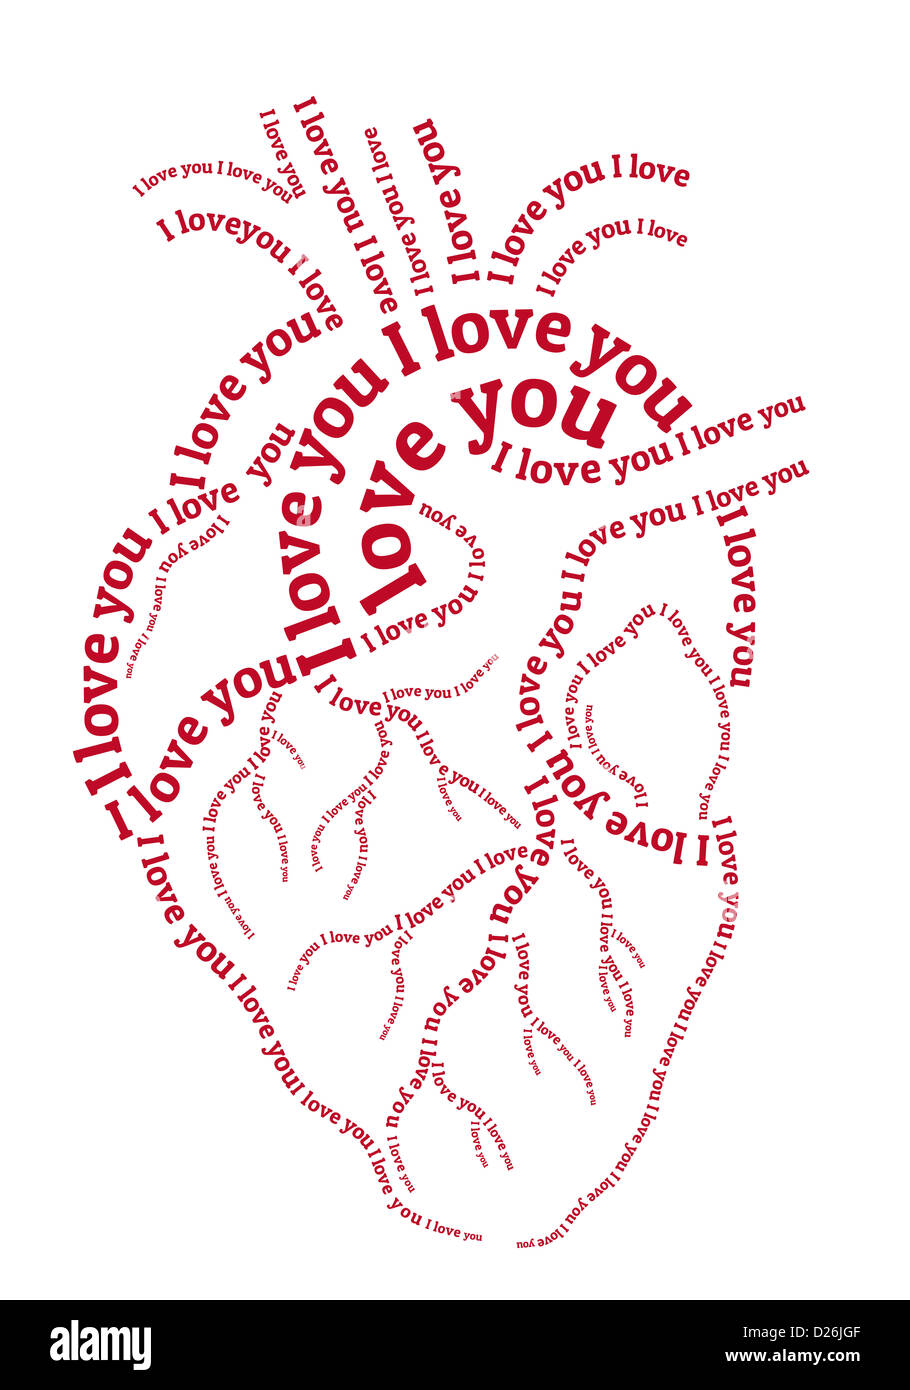 red human heart,hand drawn typography word art illustration - Stock Image